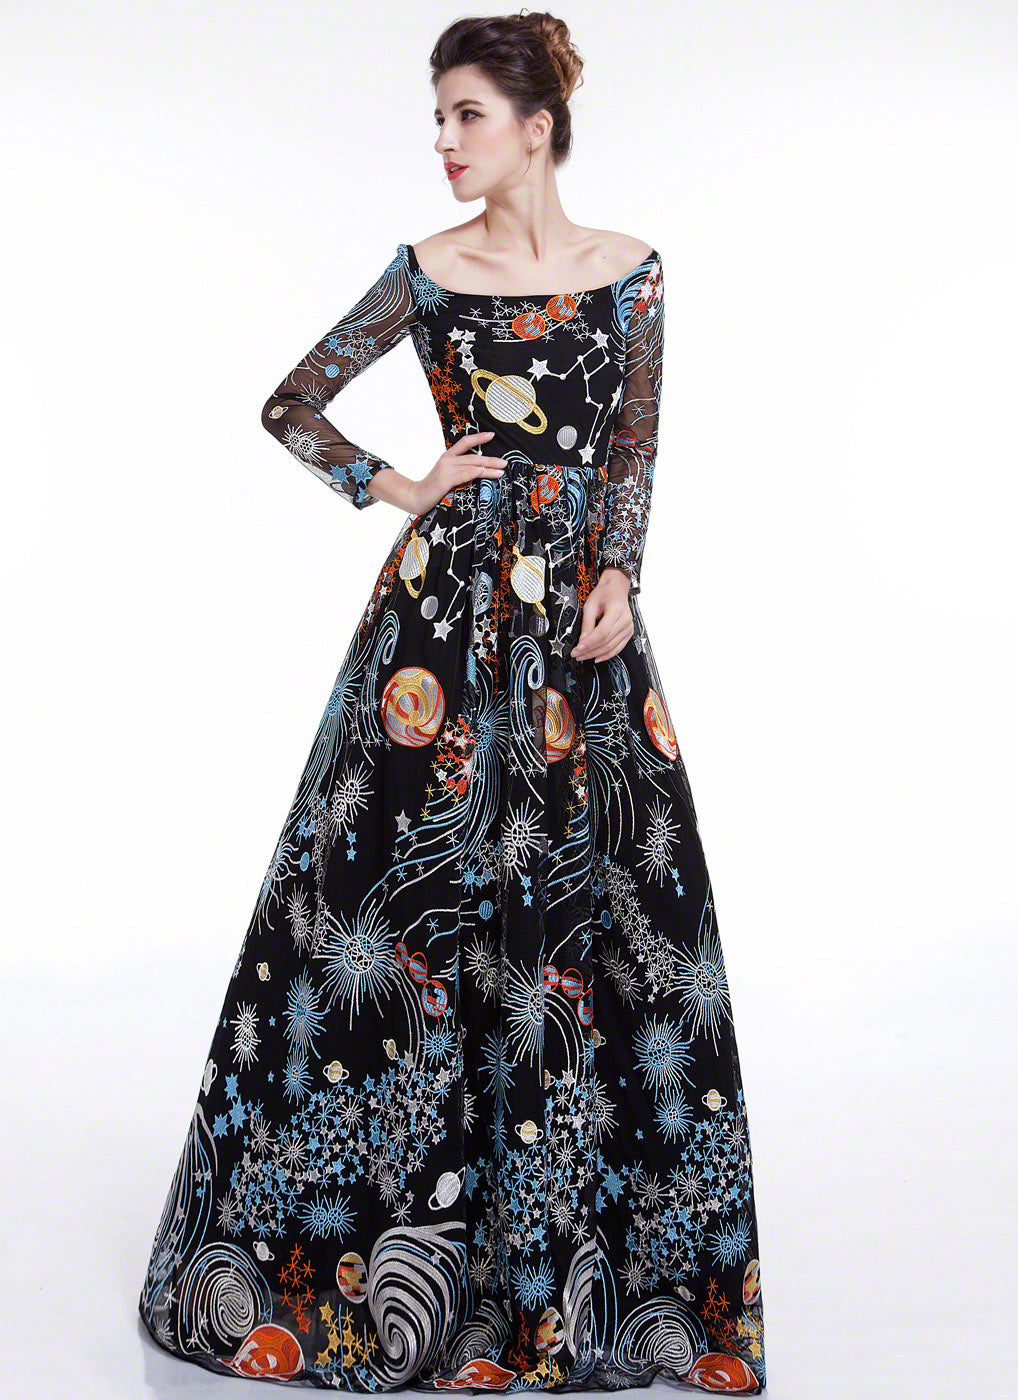 Black Galaxy Print Floor Length Evening Dress with Colorful Outer Space Embroidery and Long Sleeves